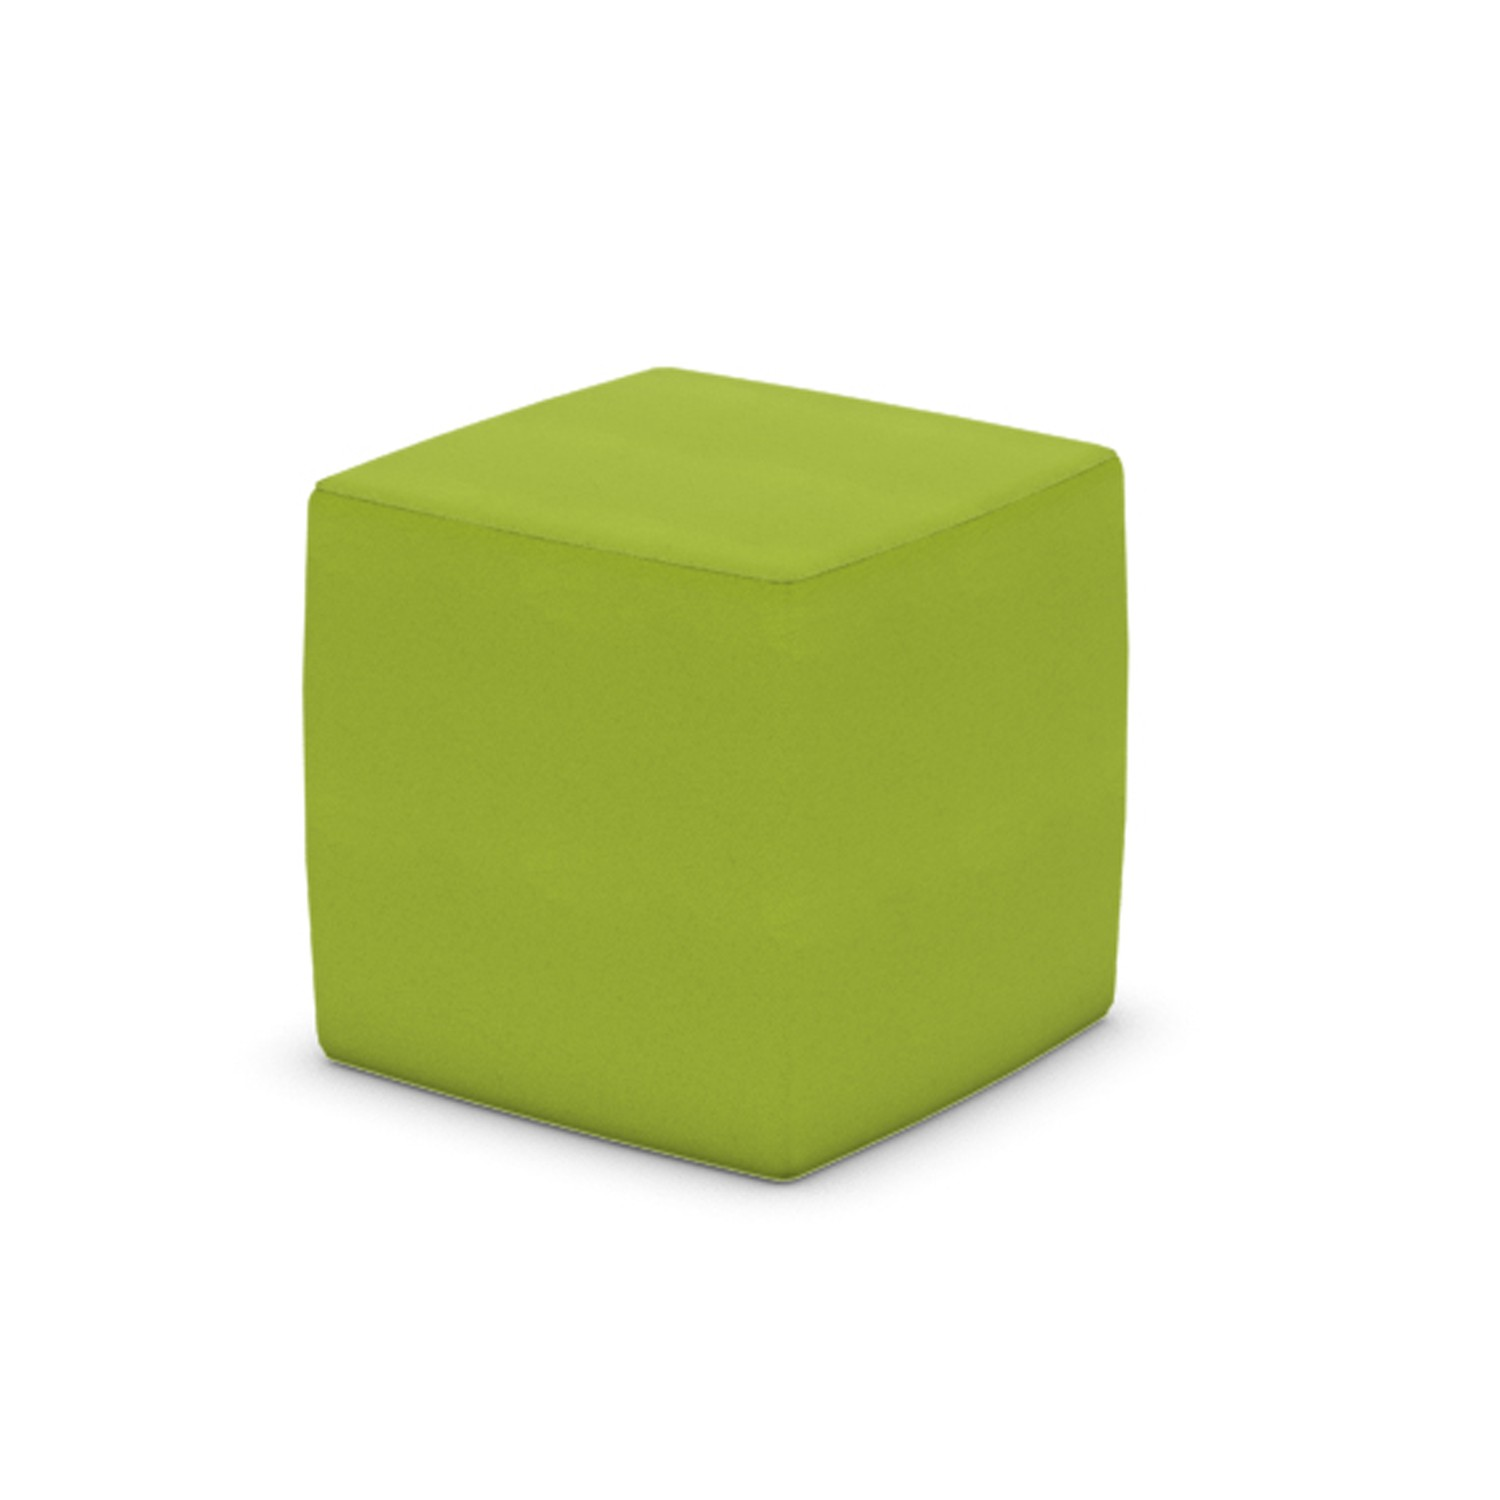 Soft Seating Cube Stool